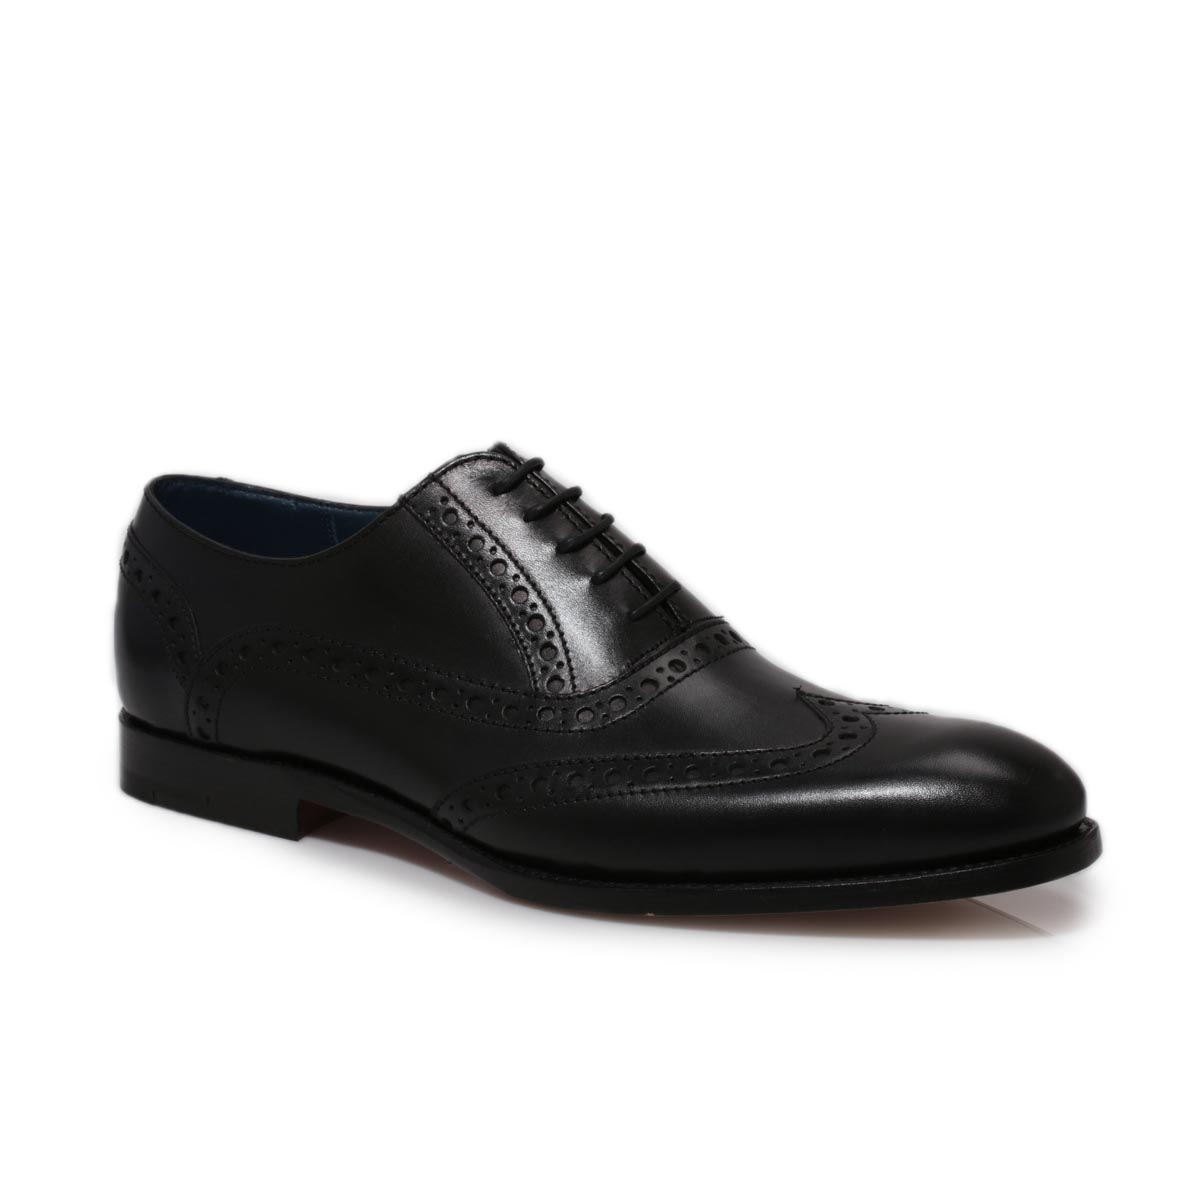 Barker Grant Black Leather Smart Lace Up Mens Formal Shoes ...